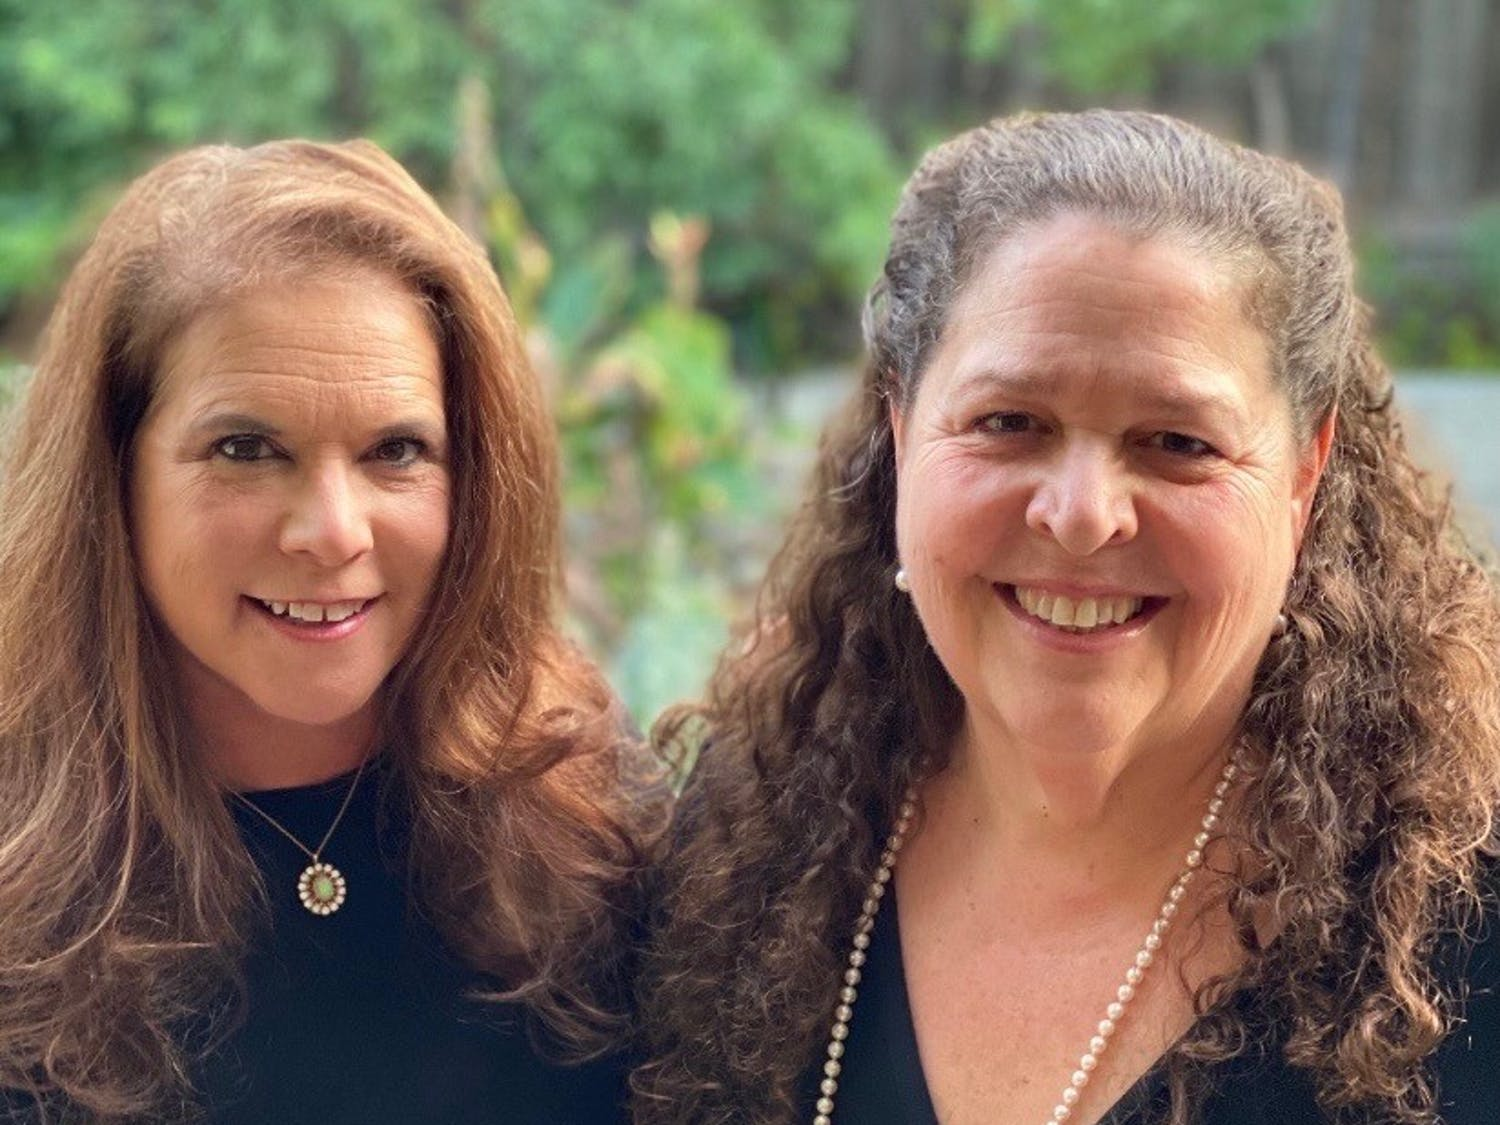 Randi Emerson (left) and Carol Marshall (right), the founders of FIlmFest 919, a film festival based in Chapel Hill, North Carolina. Photo courtesy of Emerson and Marshall.